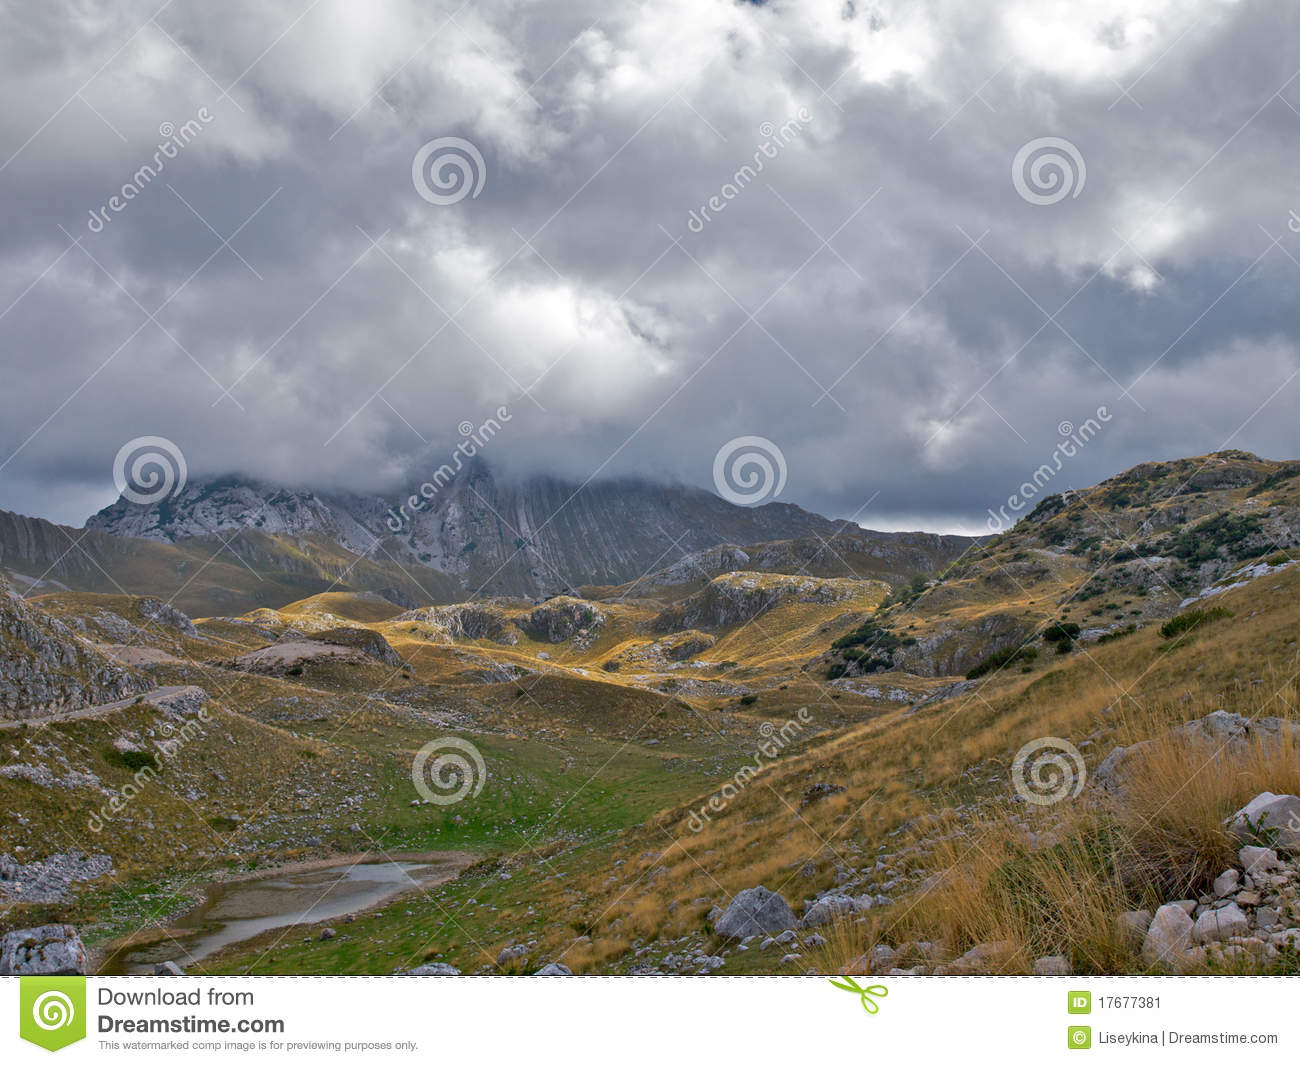 Similar Stock Images Of   Mountain Peak Hidden By Low Nimbus Clouds